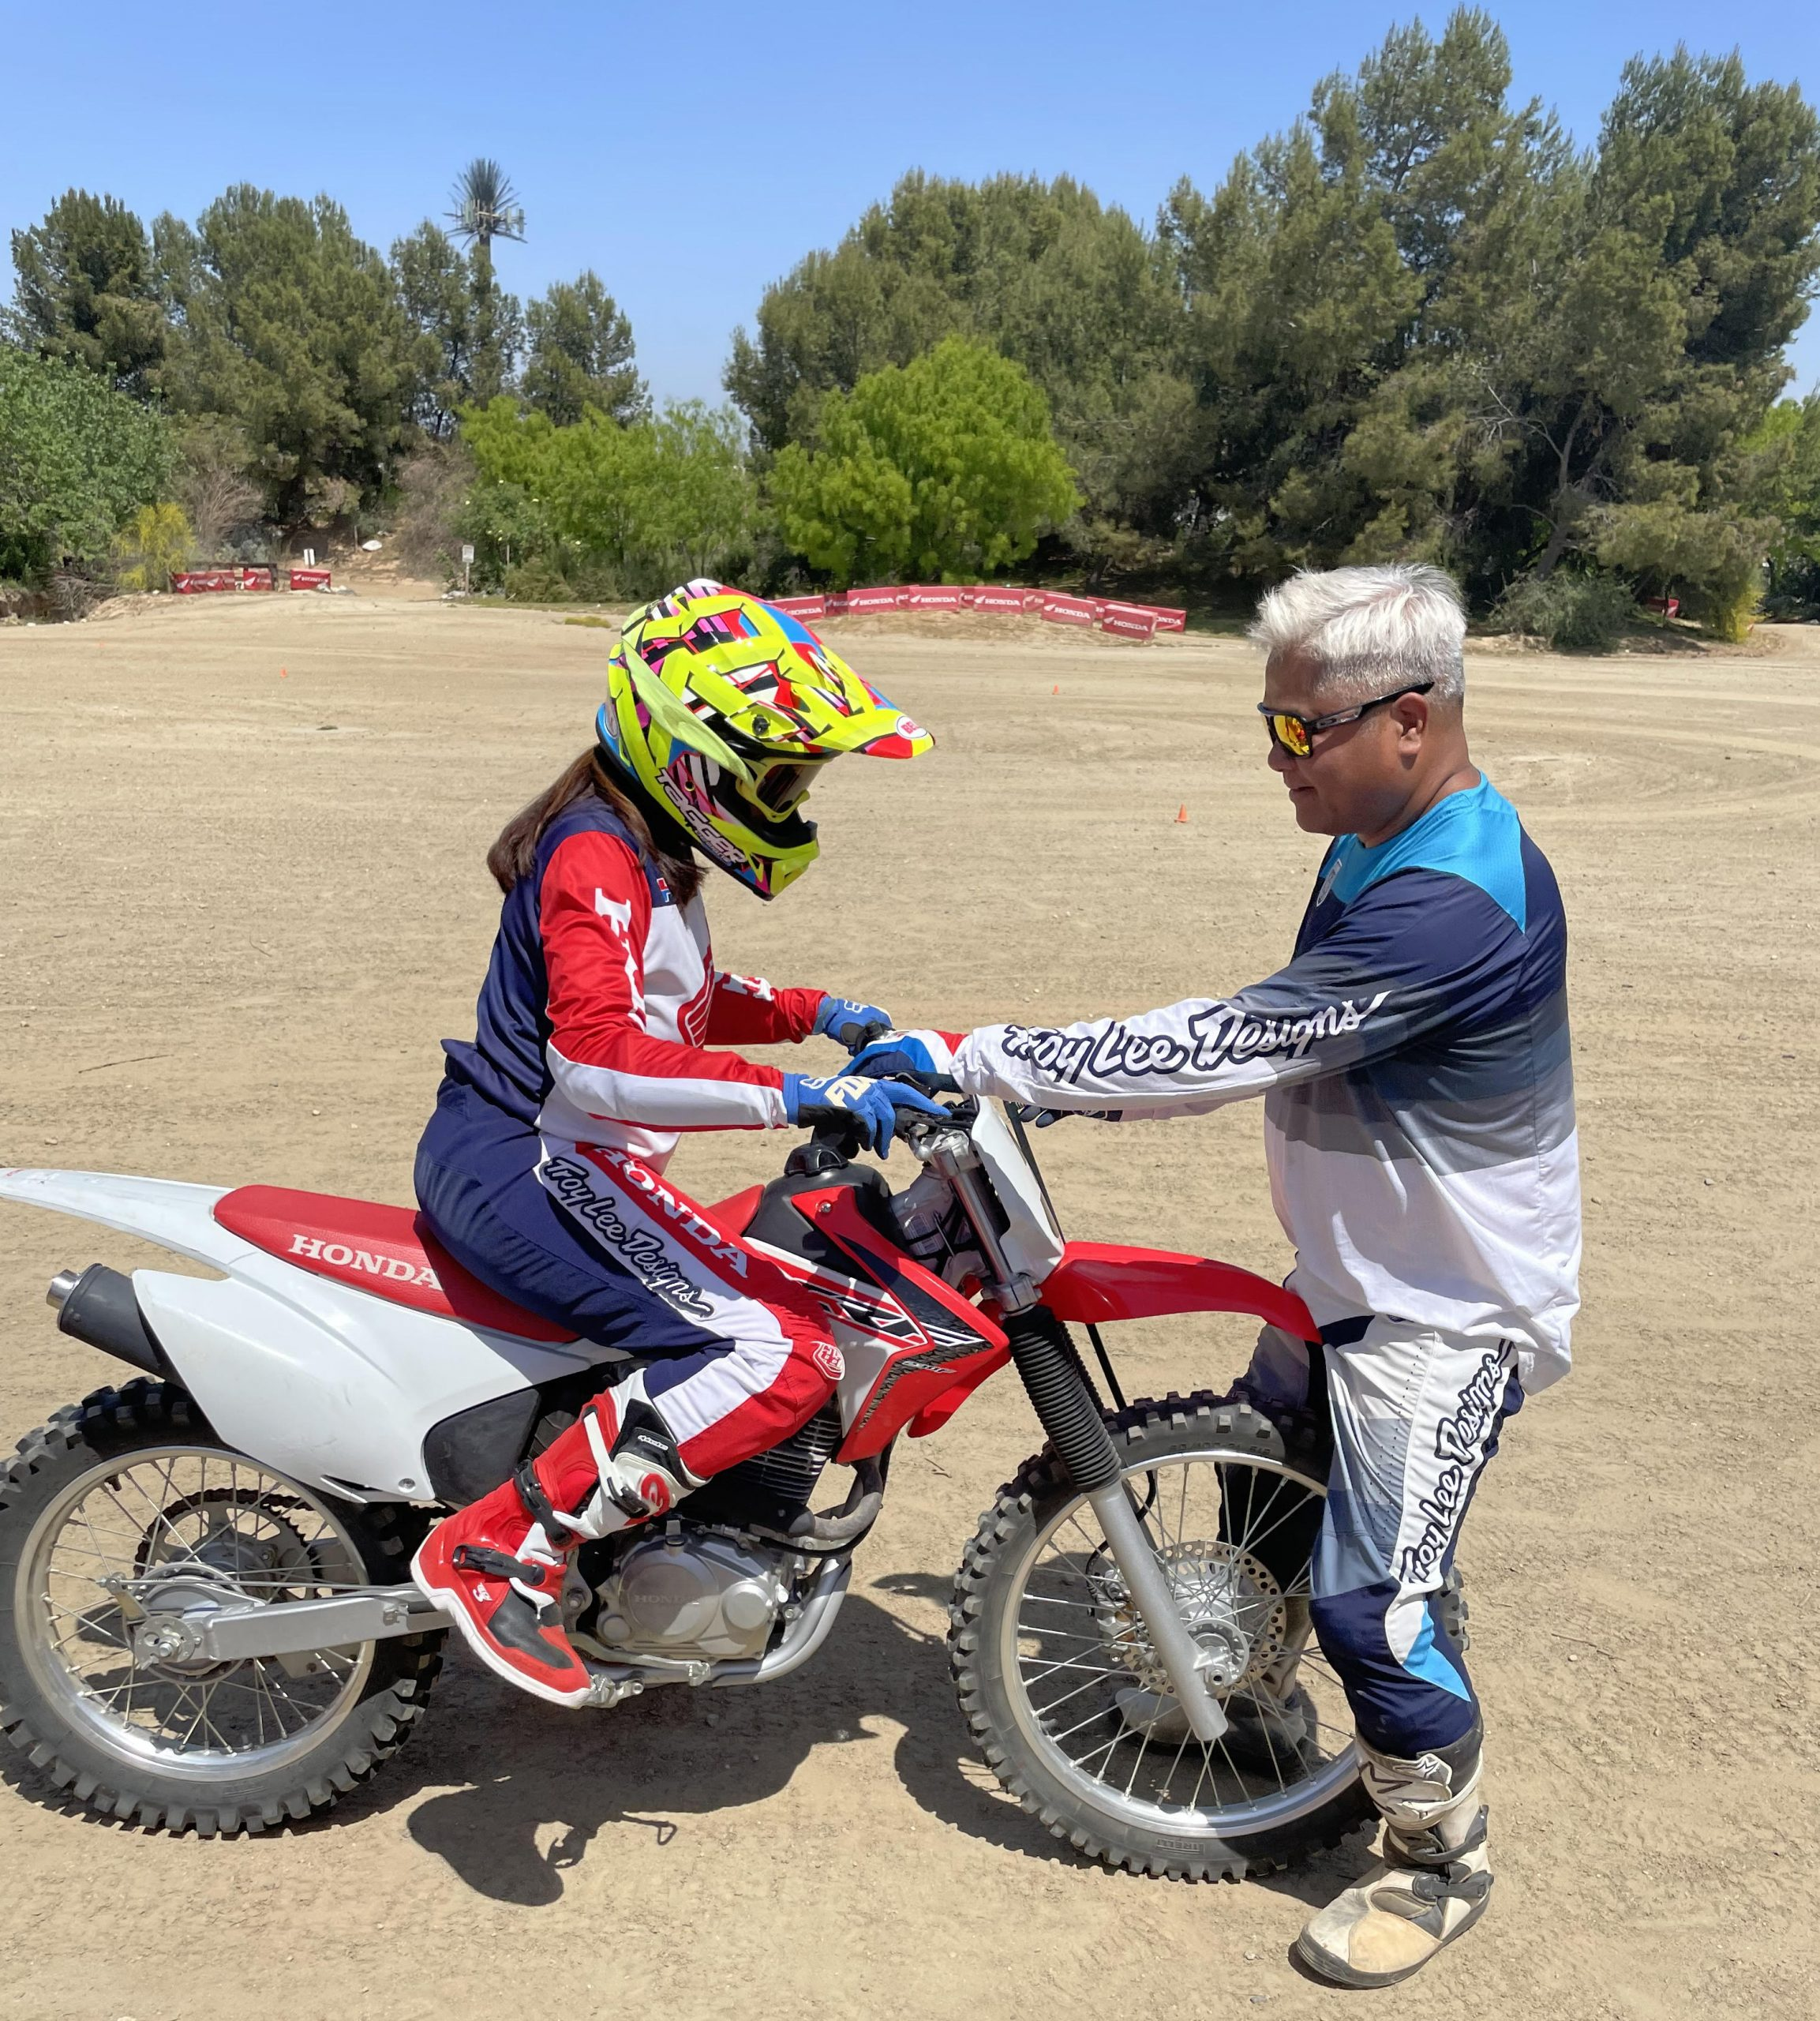 210813 Motorcycle Industry Council Brings Ride With Us Moto Intro Experiences to Overland Expo